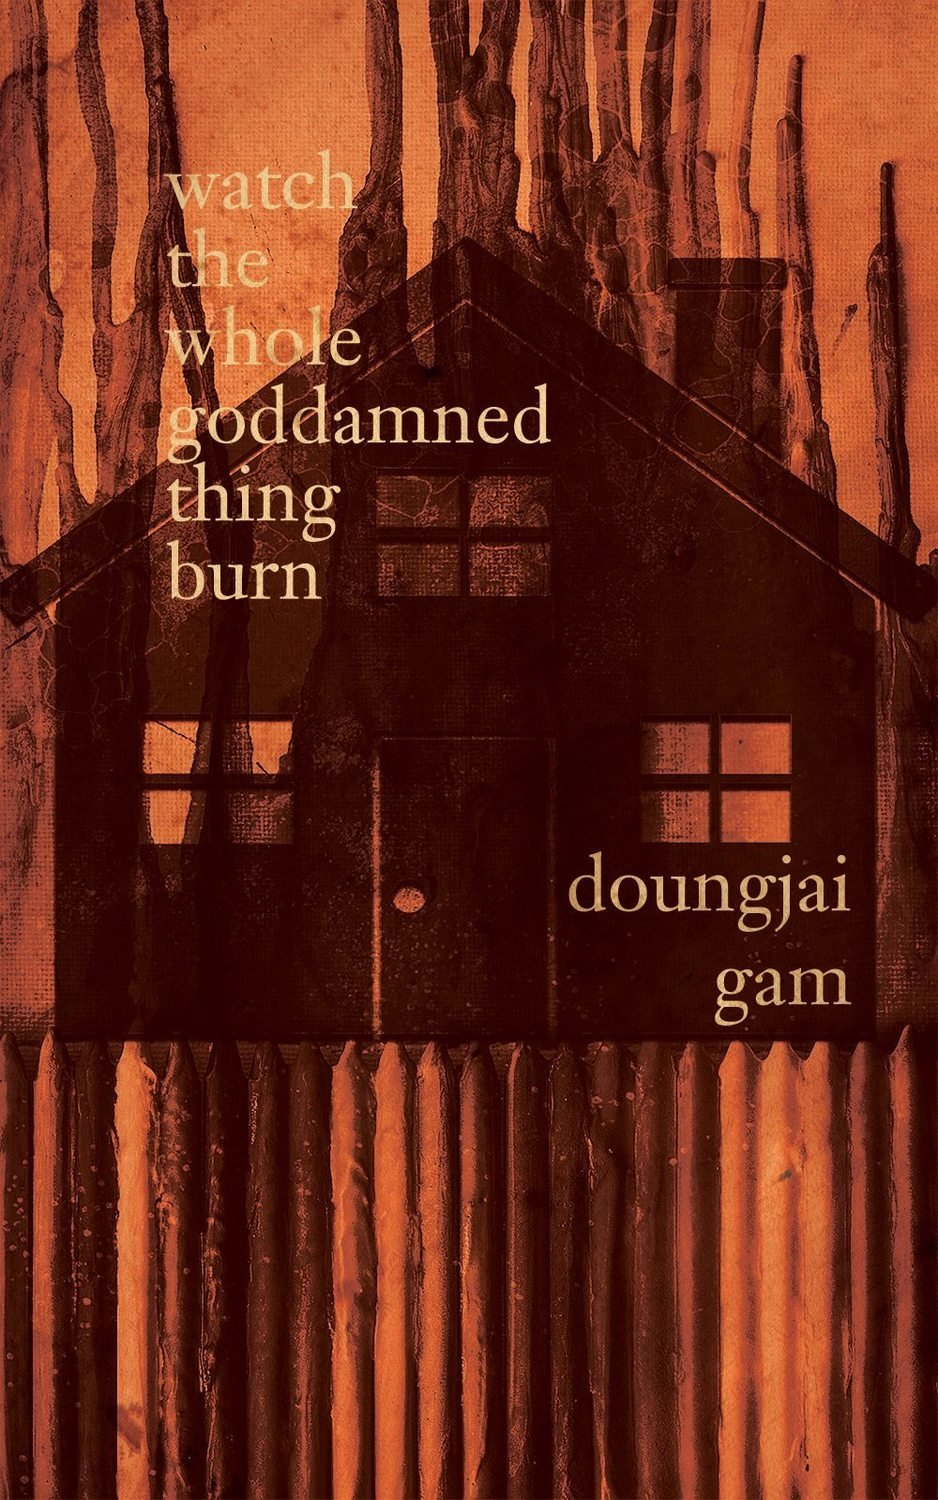 watch the whole goddamned thing burn by Doungjai Gam (Charitable Chapbook  #3 pre-order)